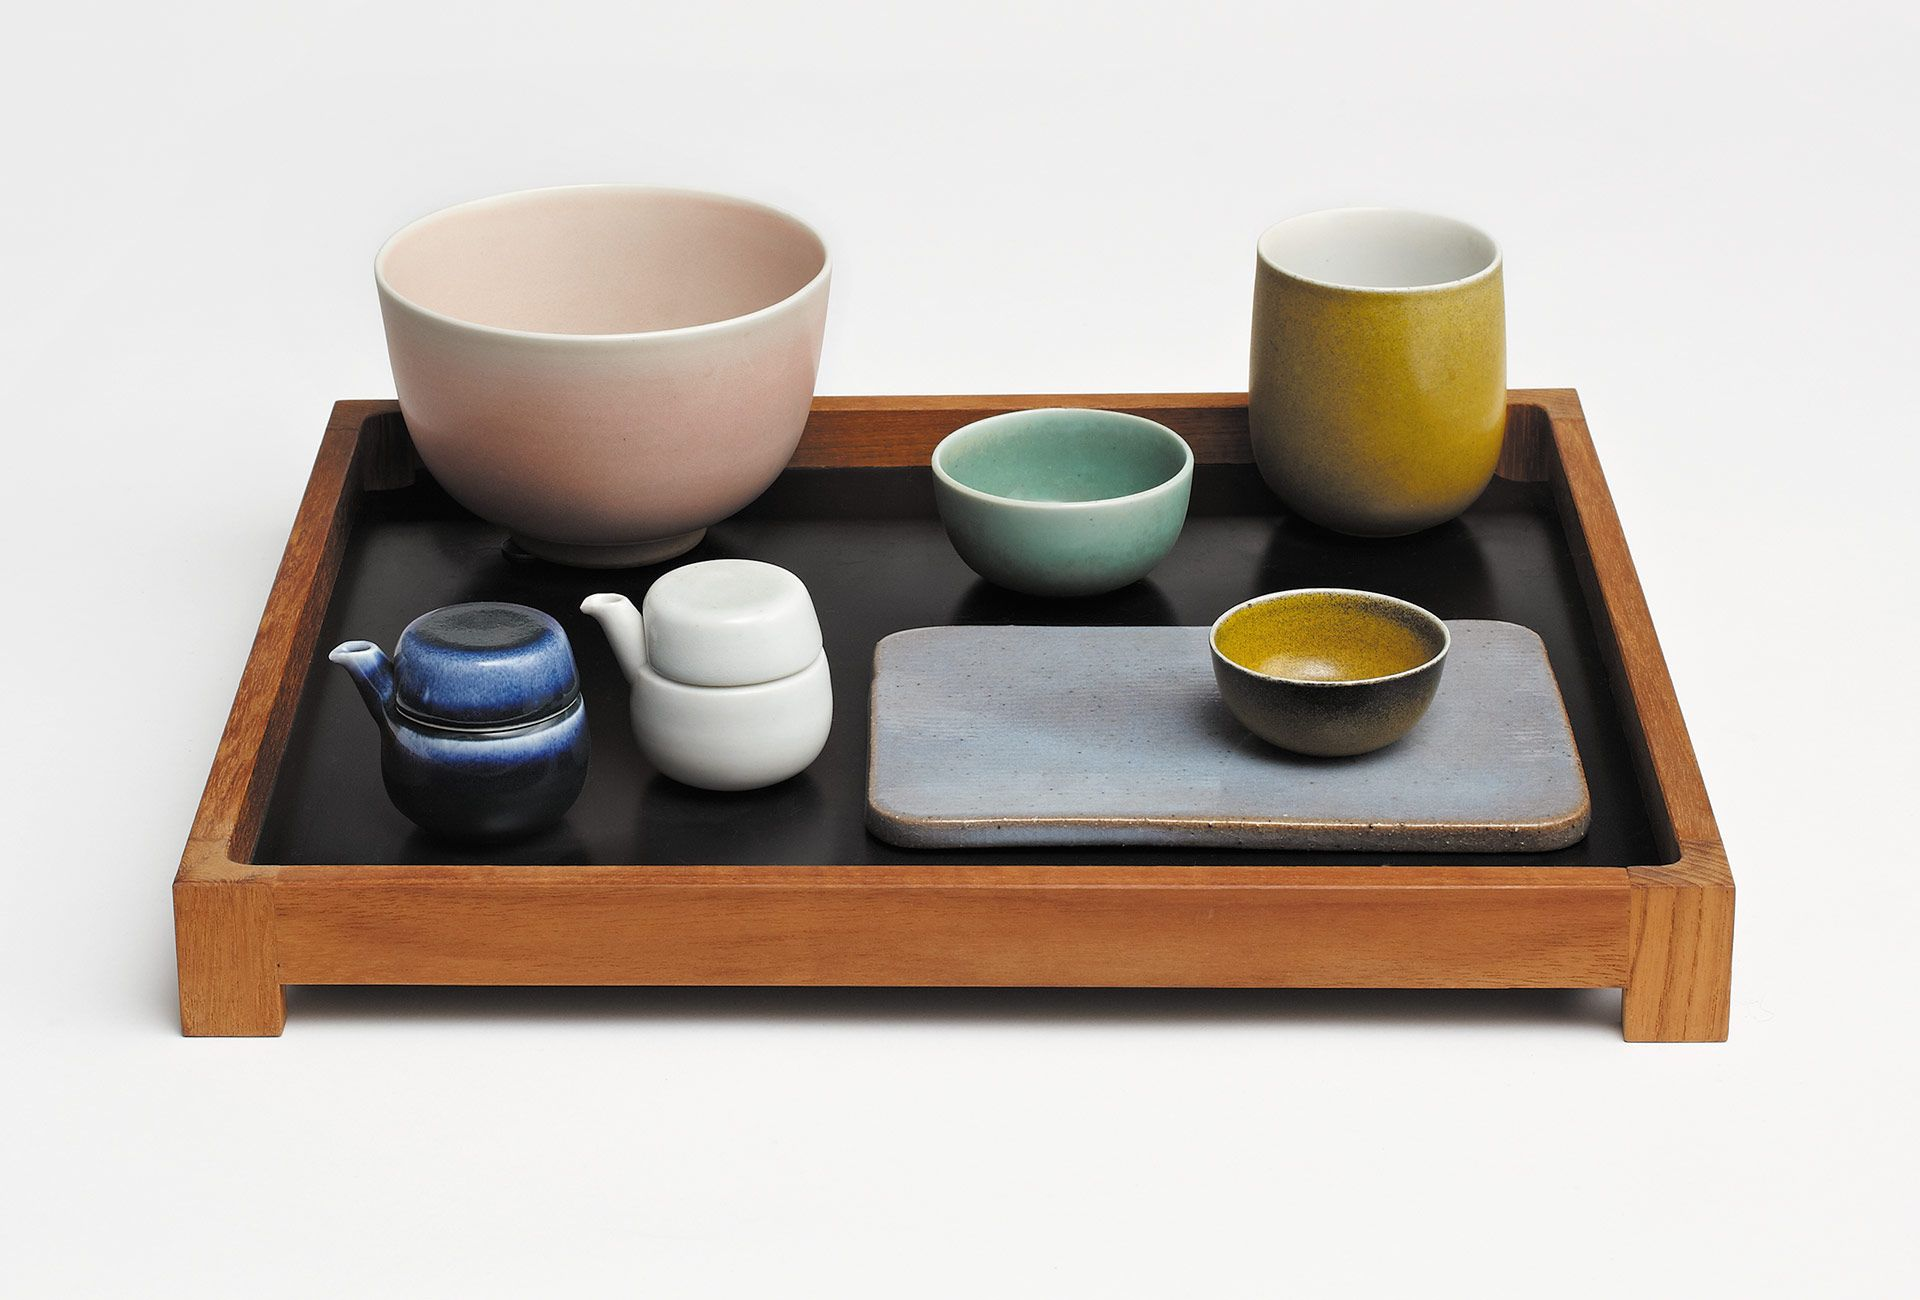 Awesome Japanese Tableware Sets